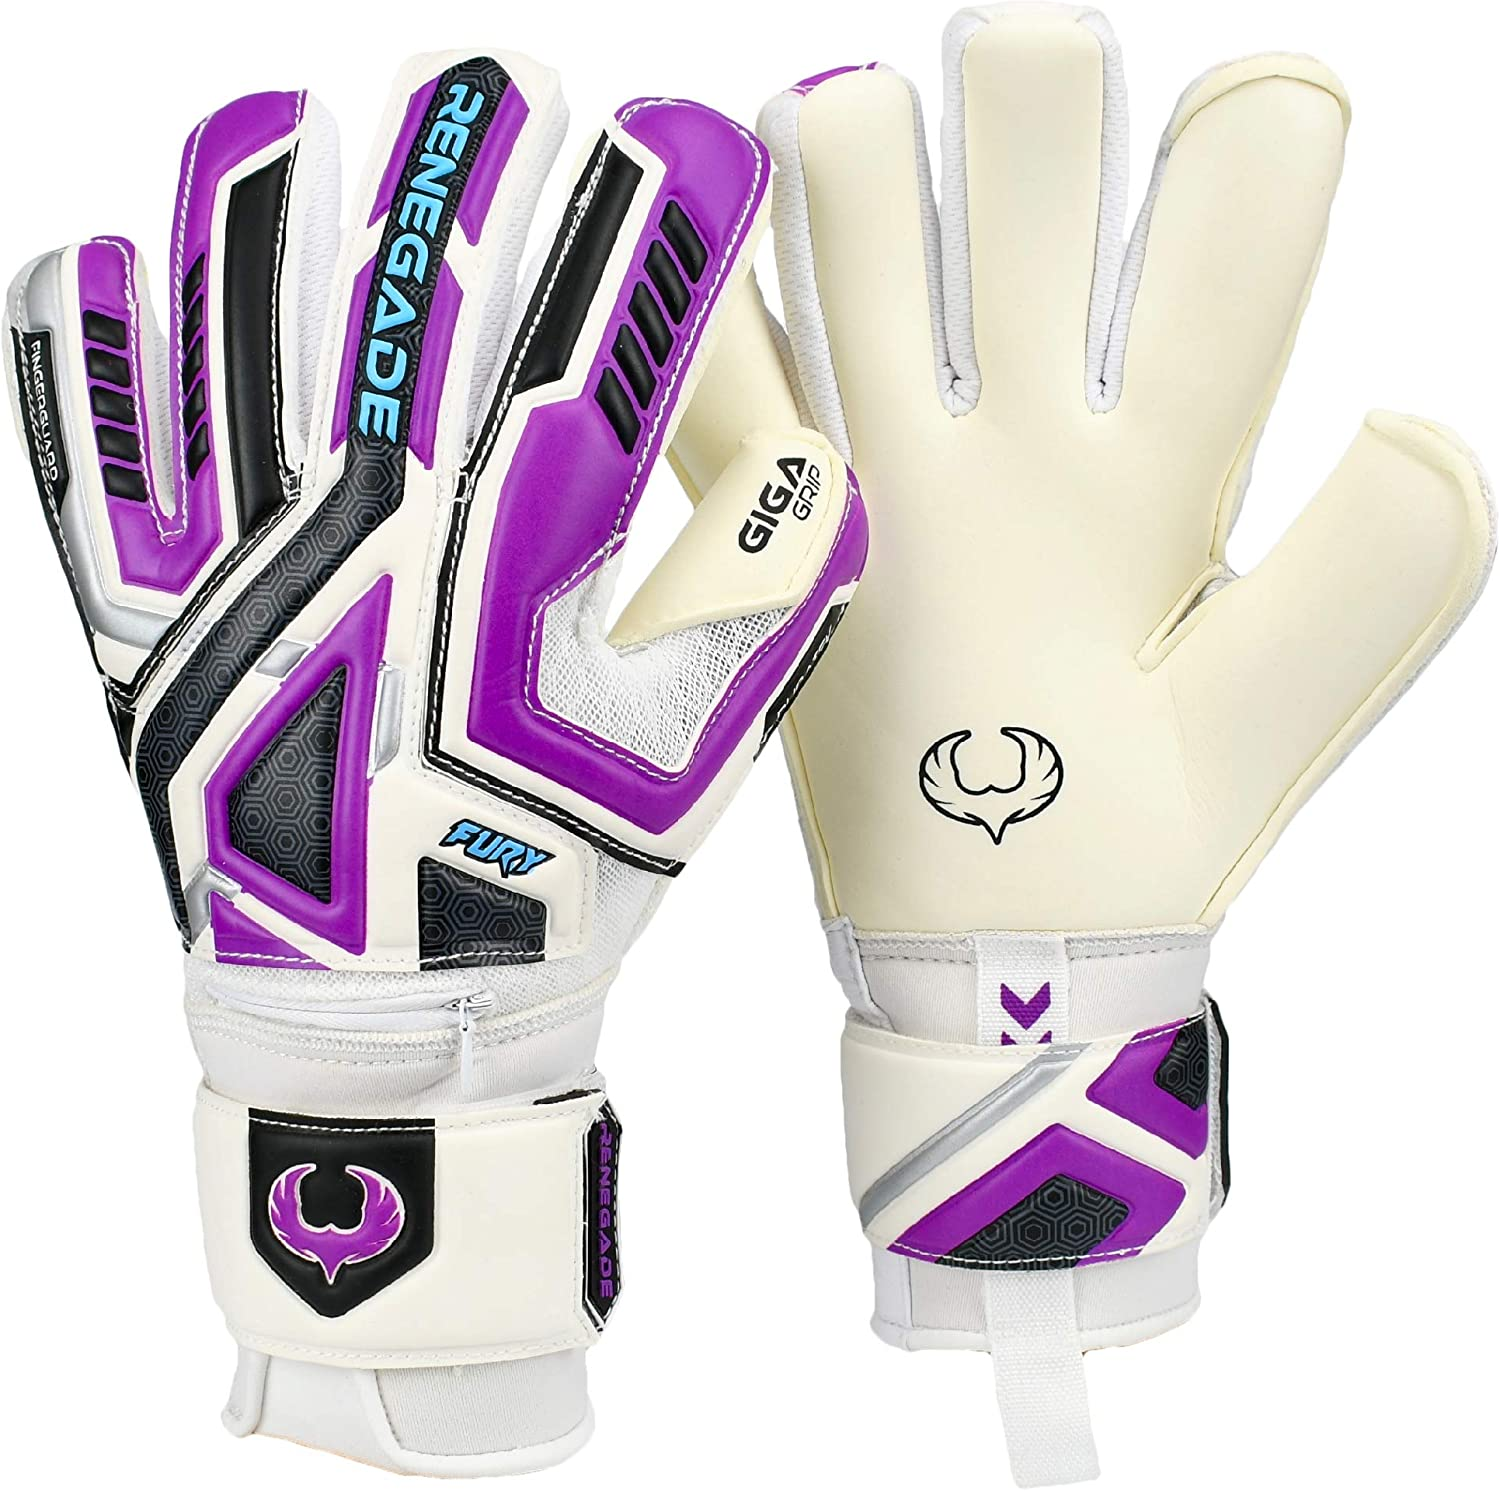 Renegade GK Fury Goalie Gloves with Microbe-Guard (Sizes 7-11, 7 Styles, Level 4) Pro-Tek Fingersaves & 4+3MM Giga Grip | High Performance Pro-Level Goalkeeper Glove | Based in The USA